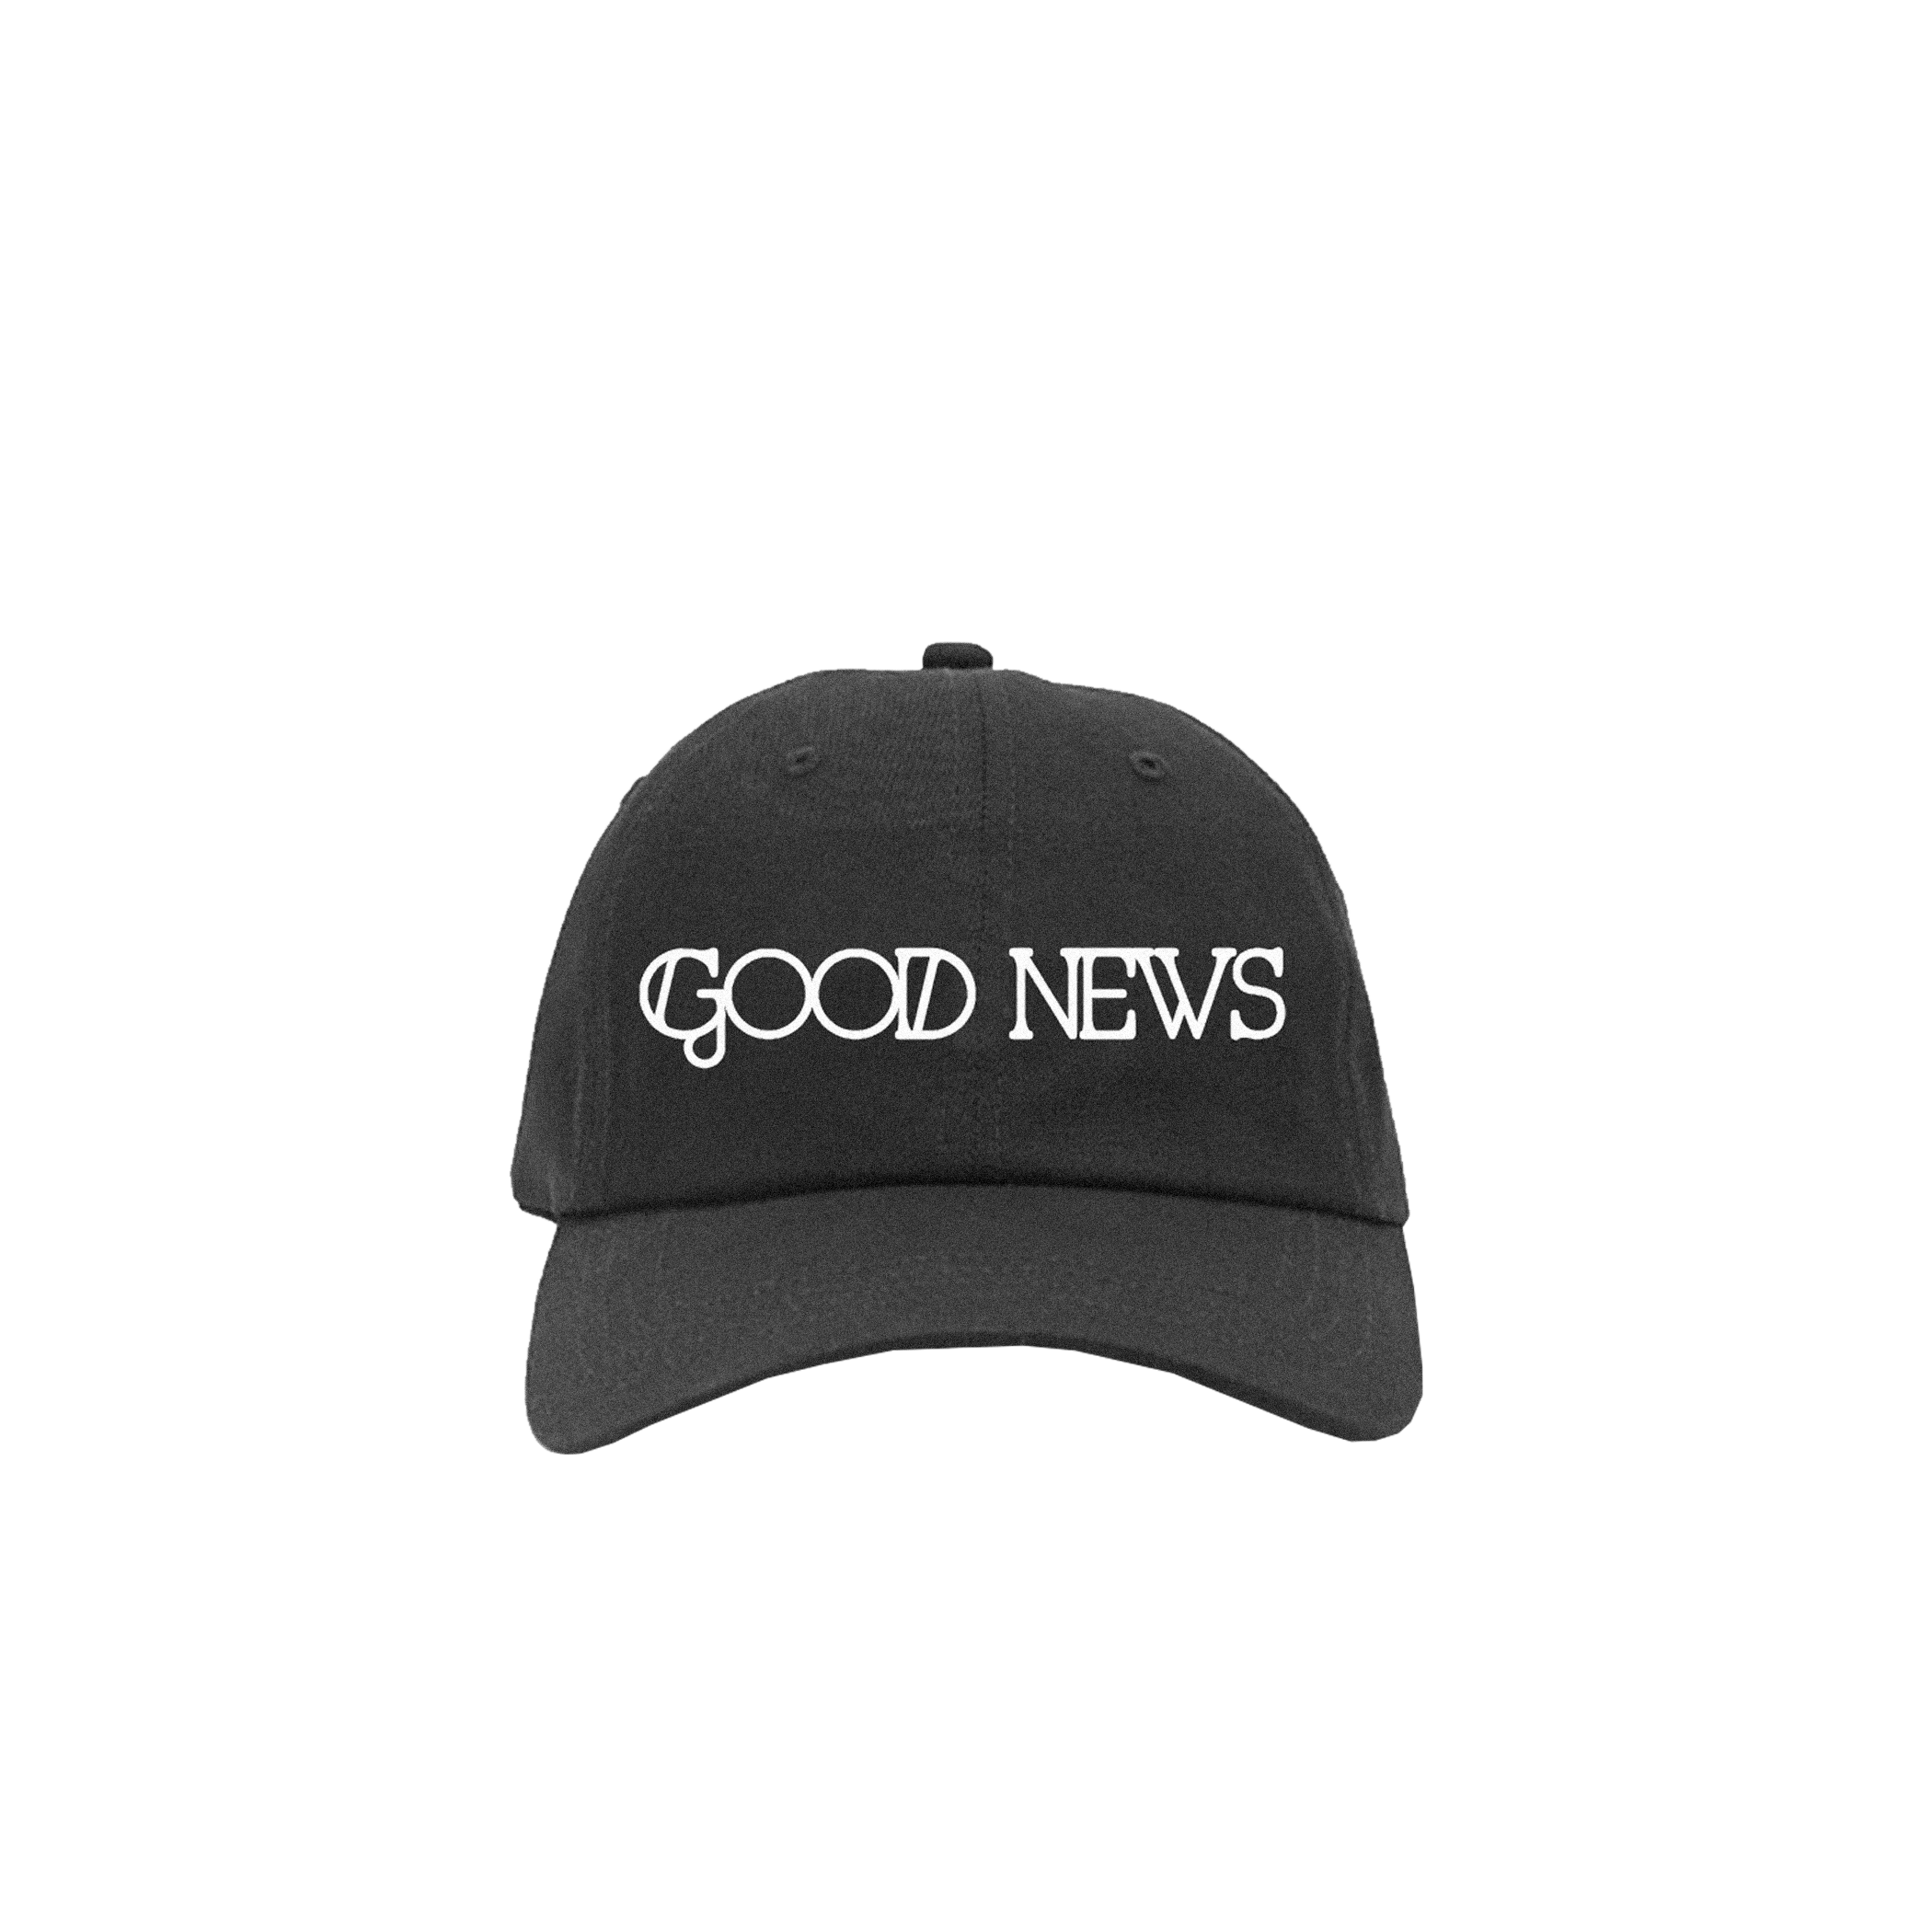 Good News Embroidered Hat - Black